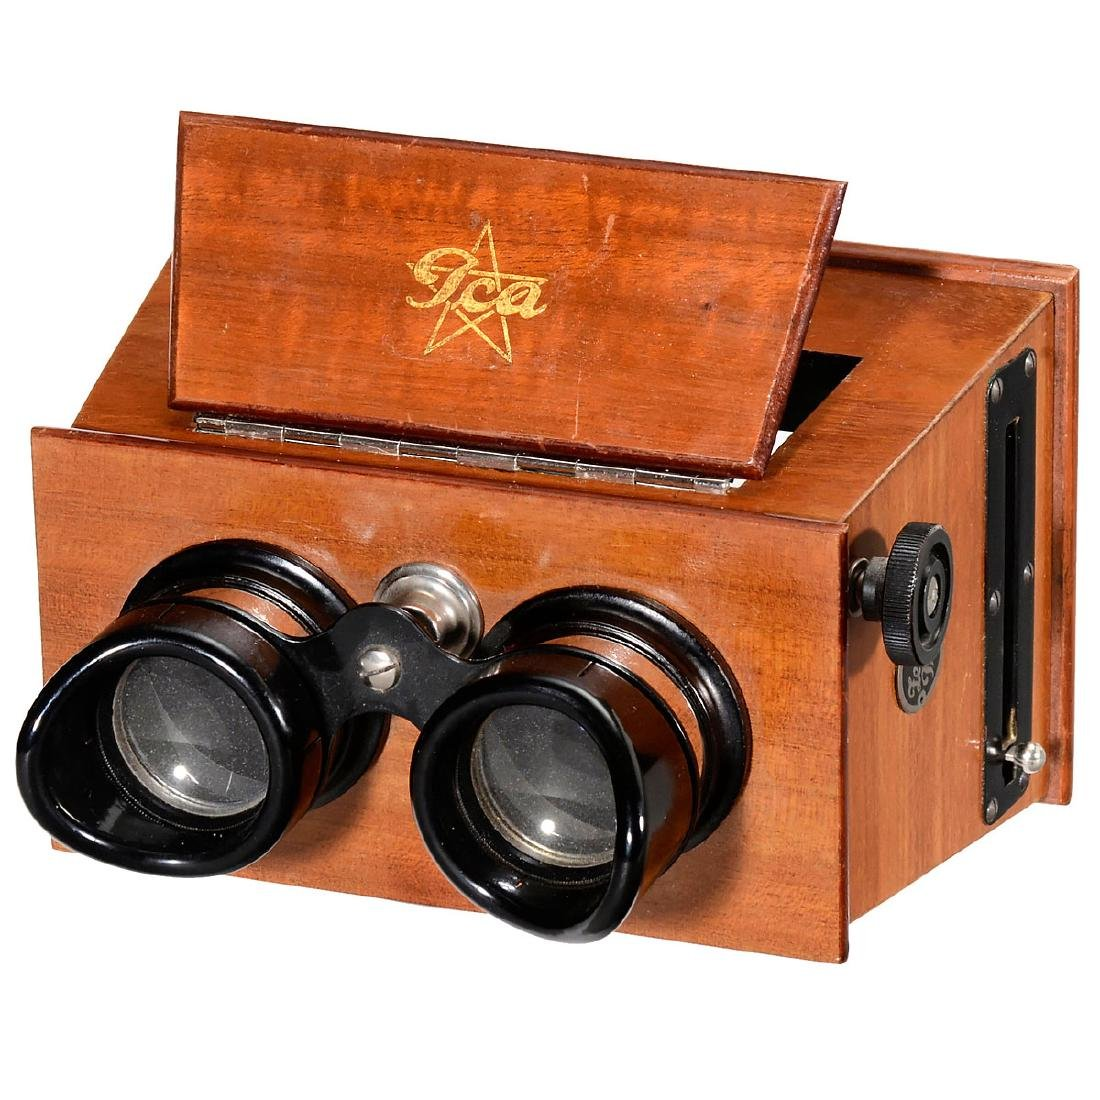 2 Hand Stereo Viewers (6 x 13 and 45 x 107), c. 1926 - 3